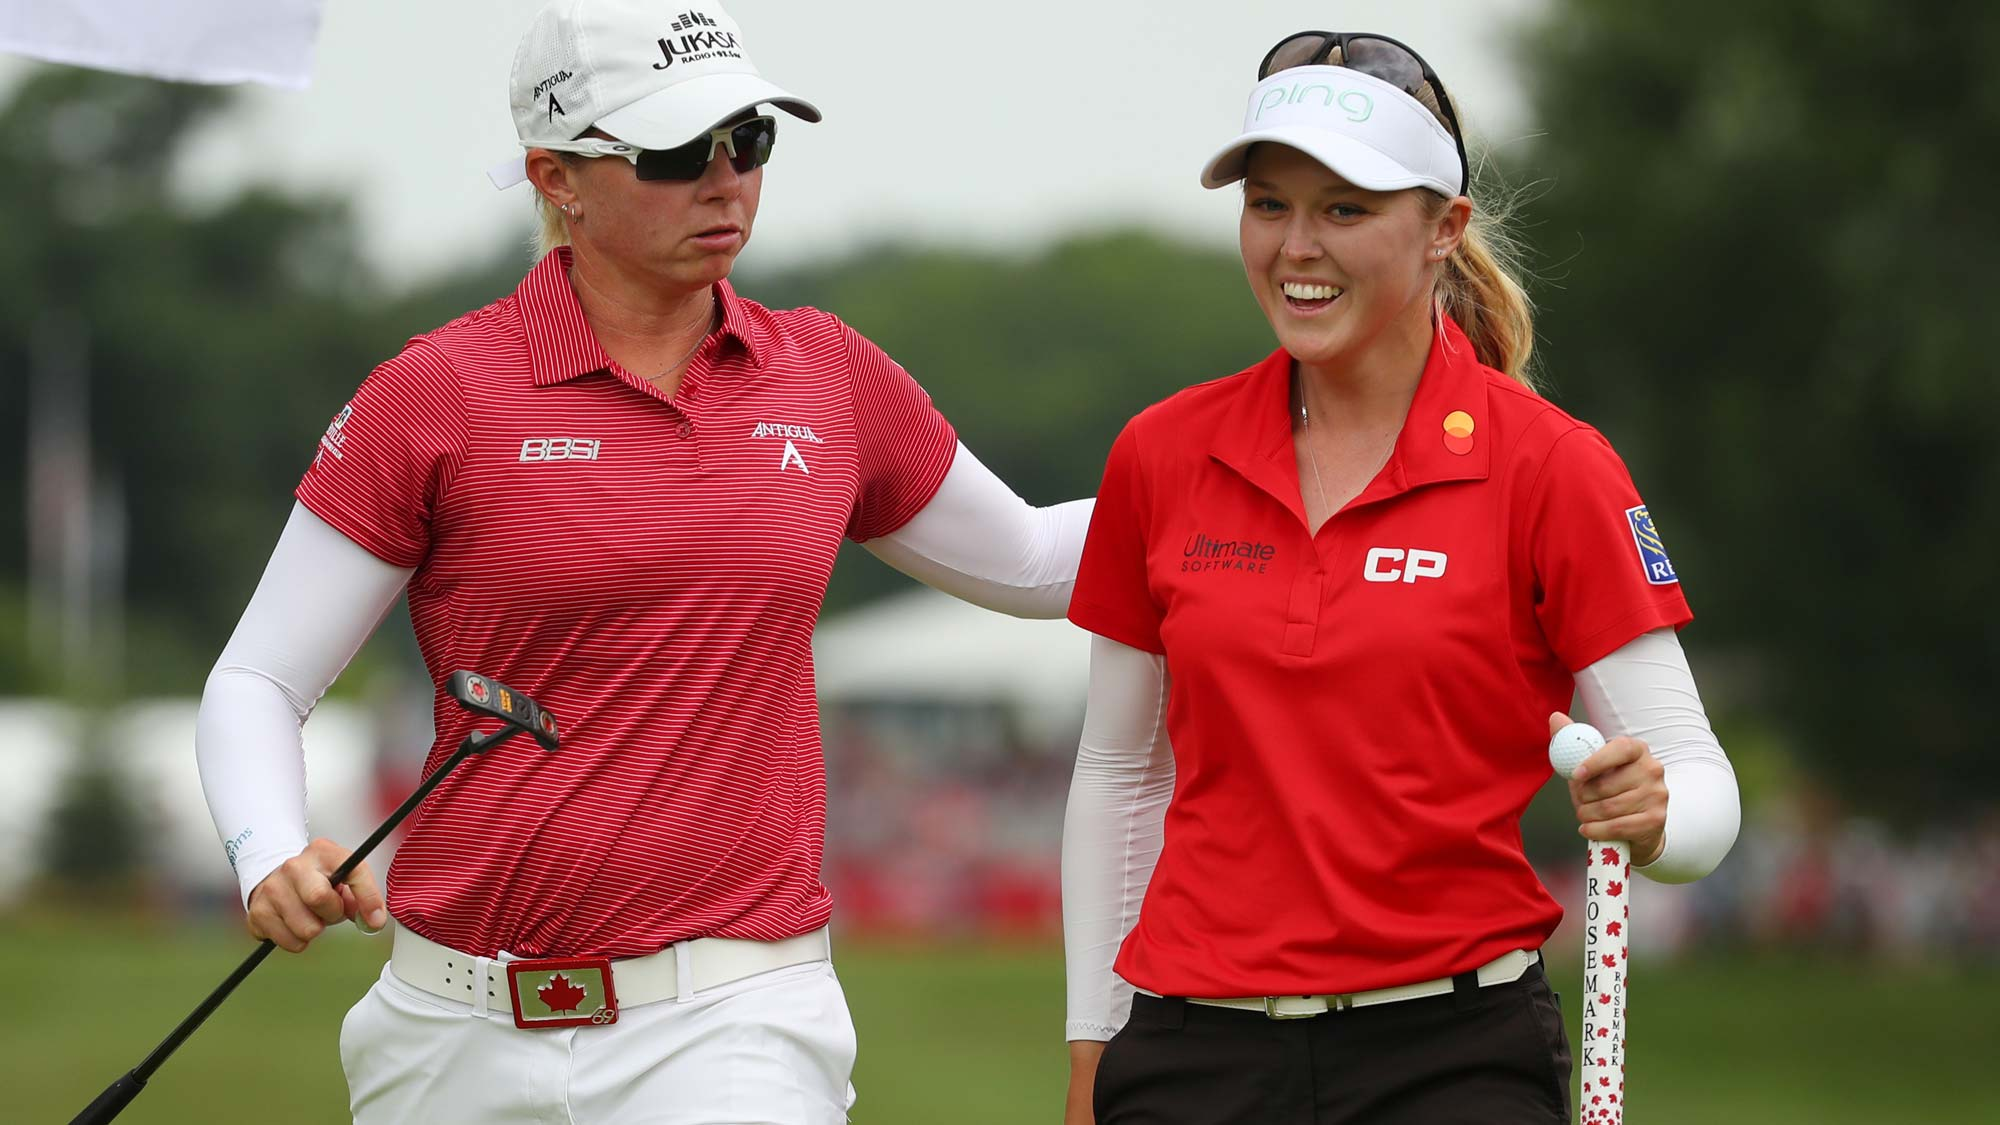 Teammates Brooke Henderson (R) and Alena Sharp walk off the first green during round two of the Dow Great Lakes Bay Invitational